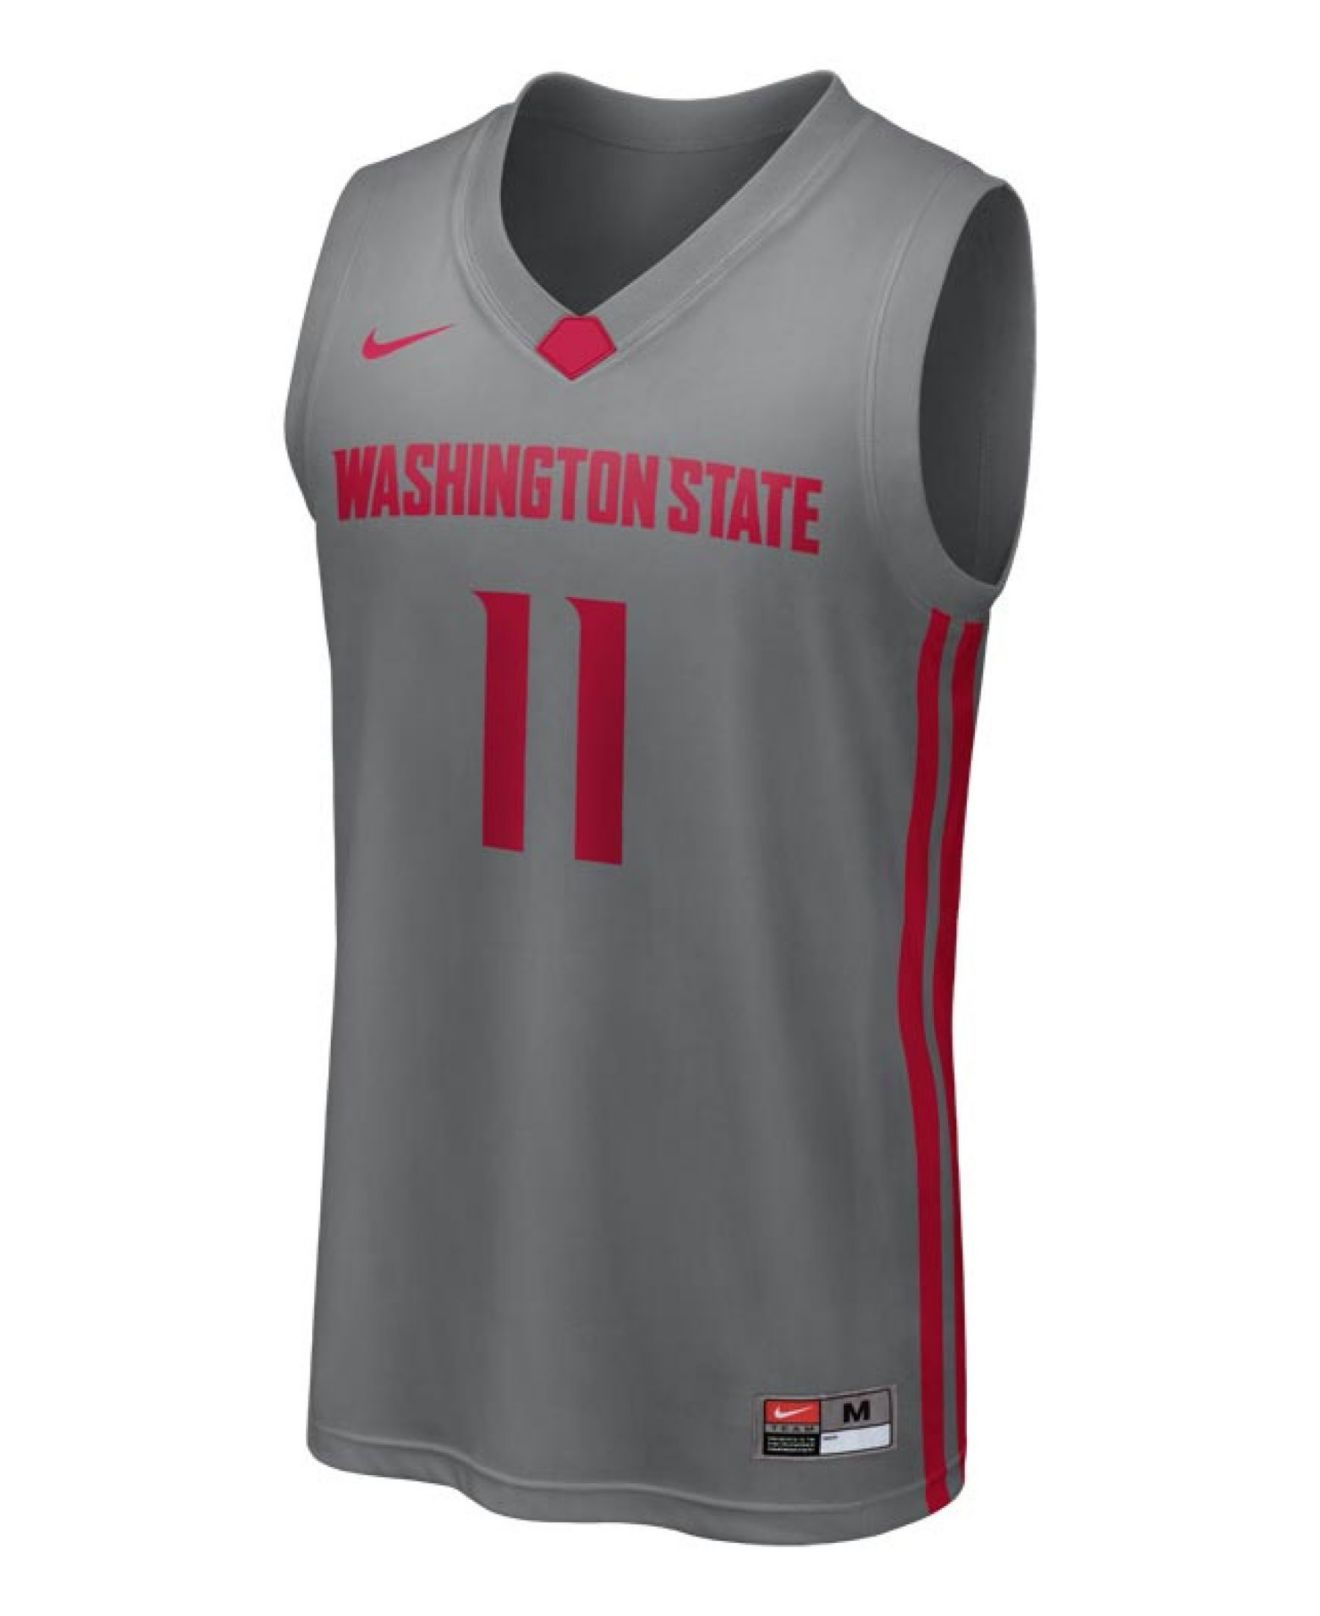 Lyst - Nike Men S Washington State Cougars Replica Basketball Jersey ... 3bbc6d63a